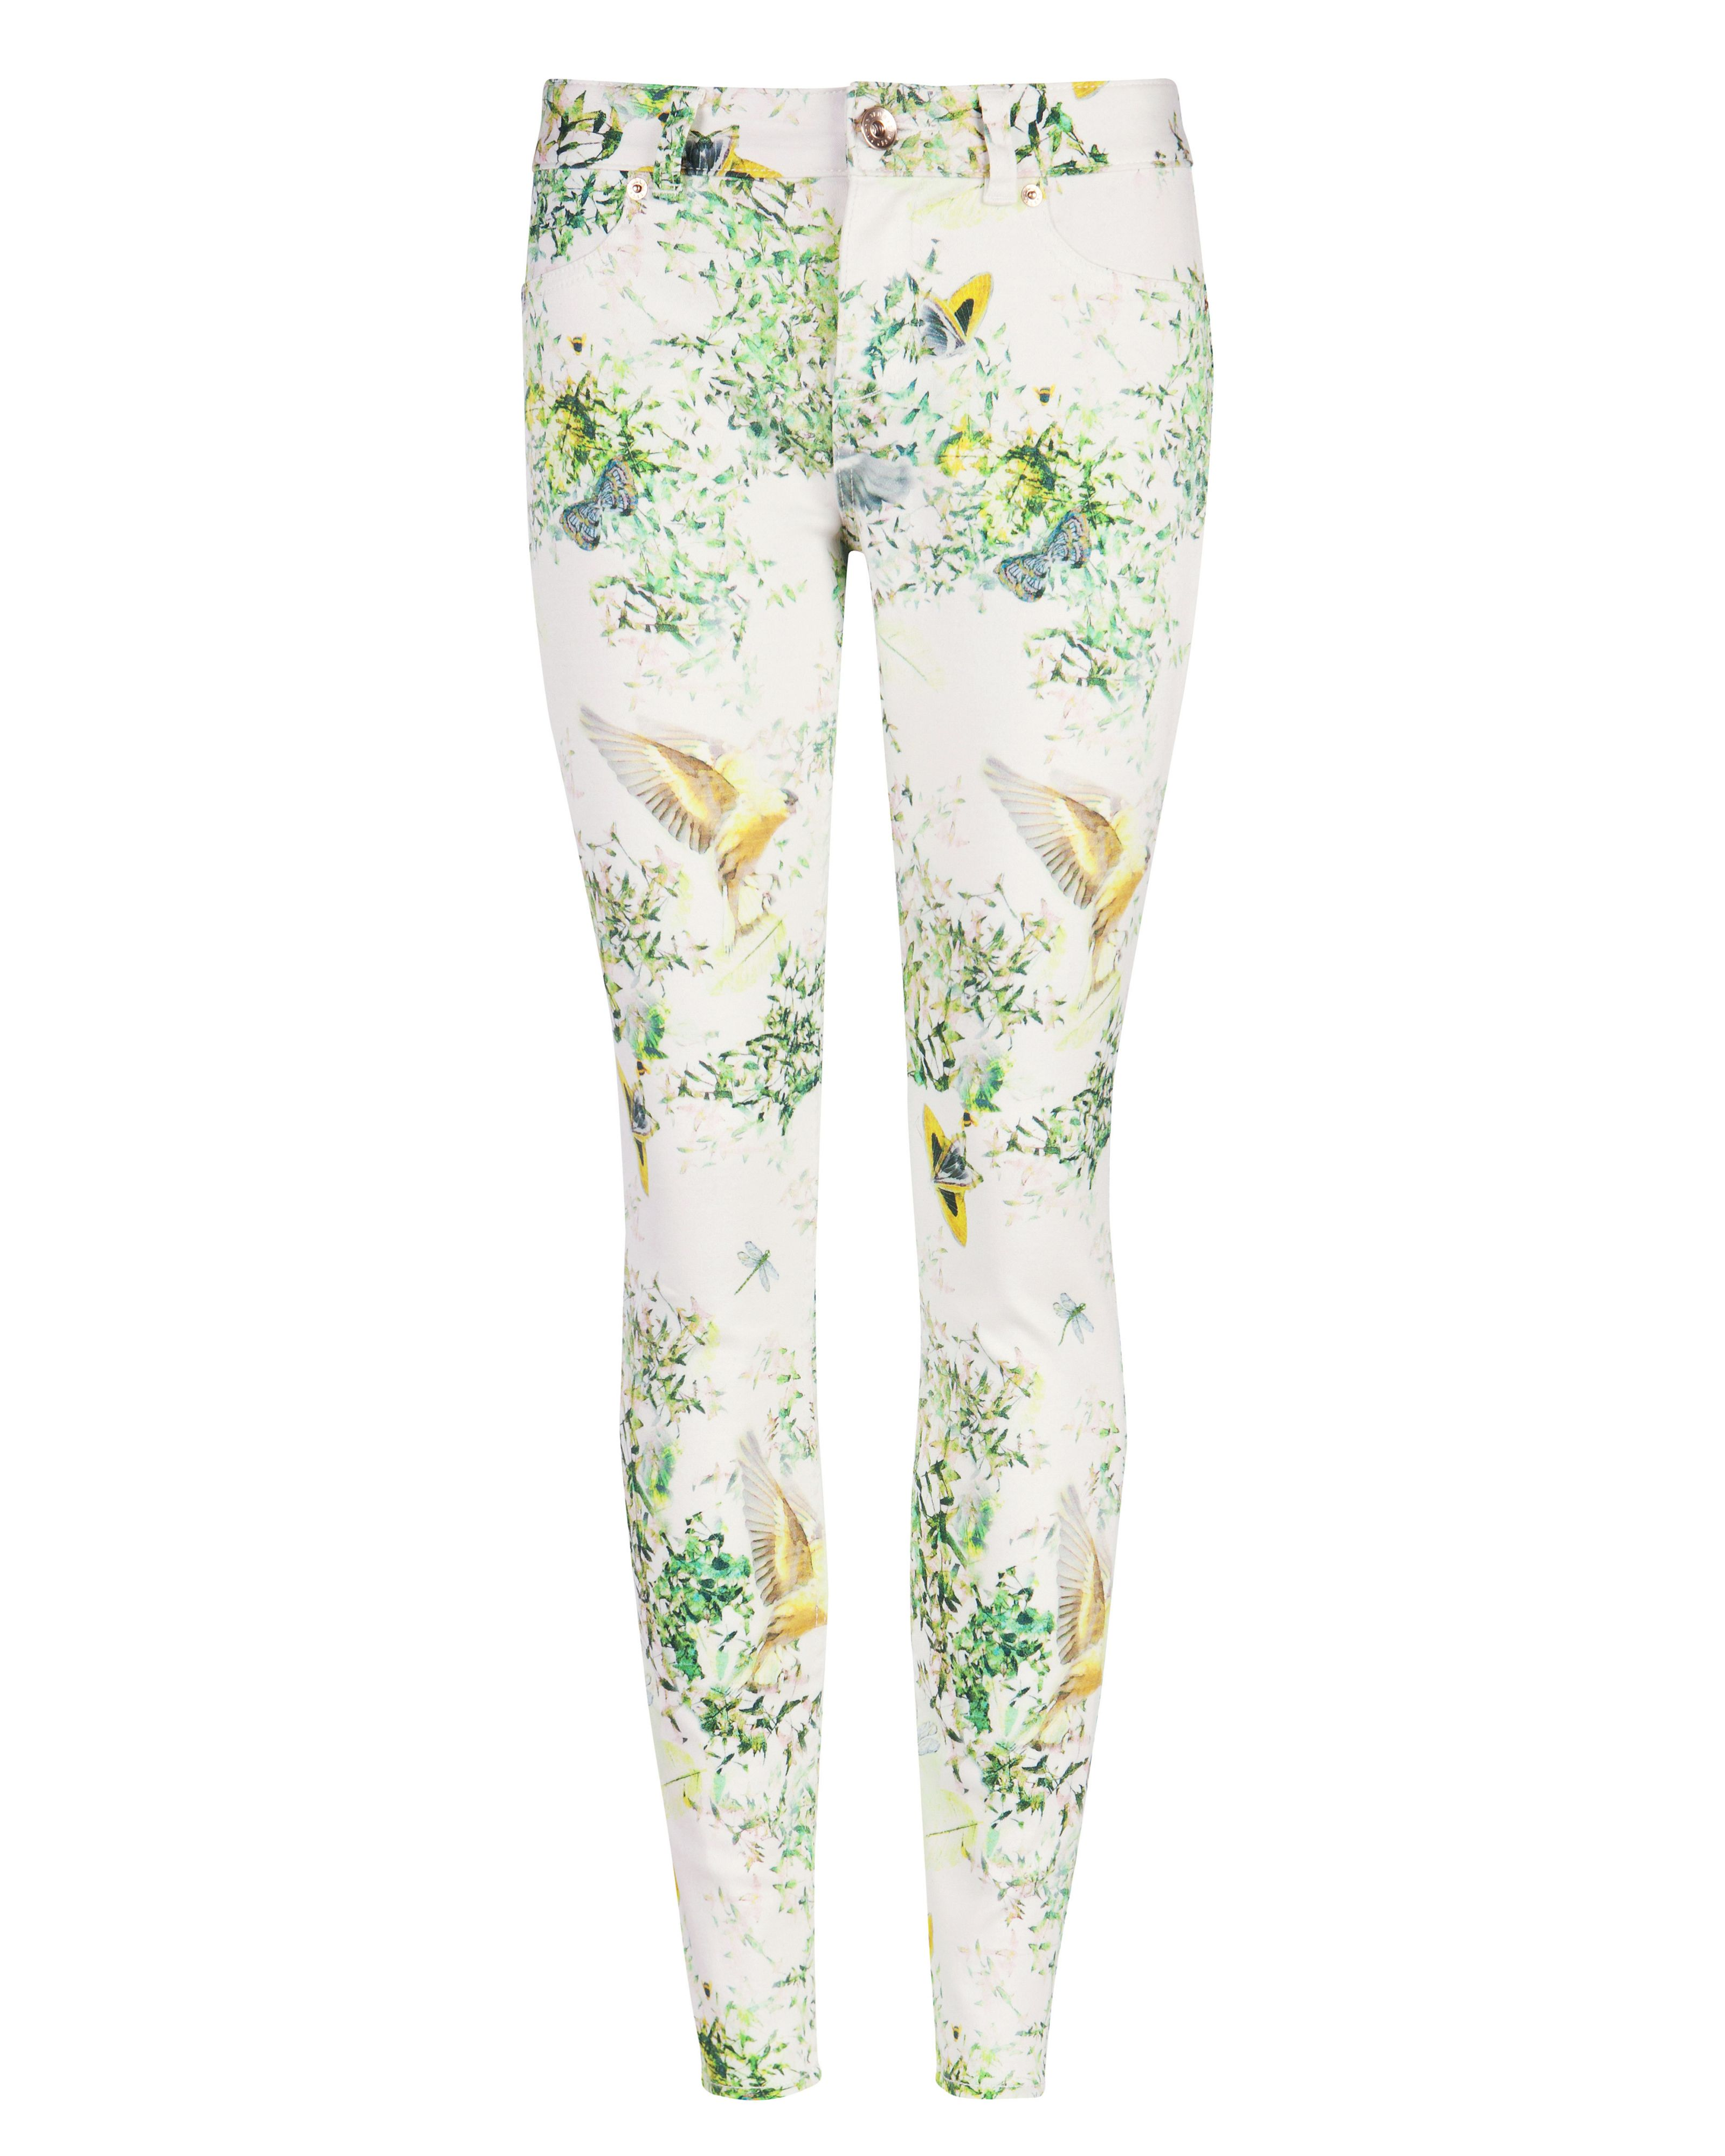 Pannah dancing leaves printed denim